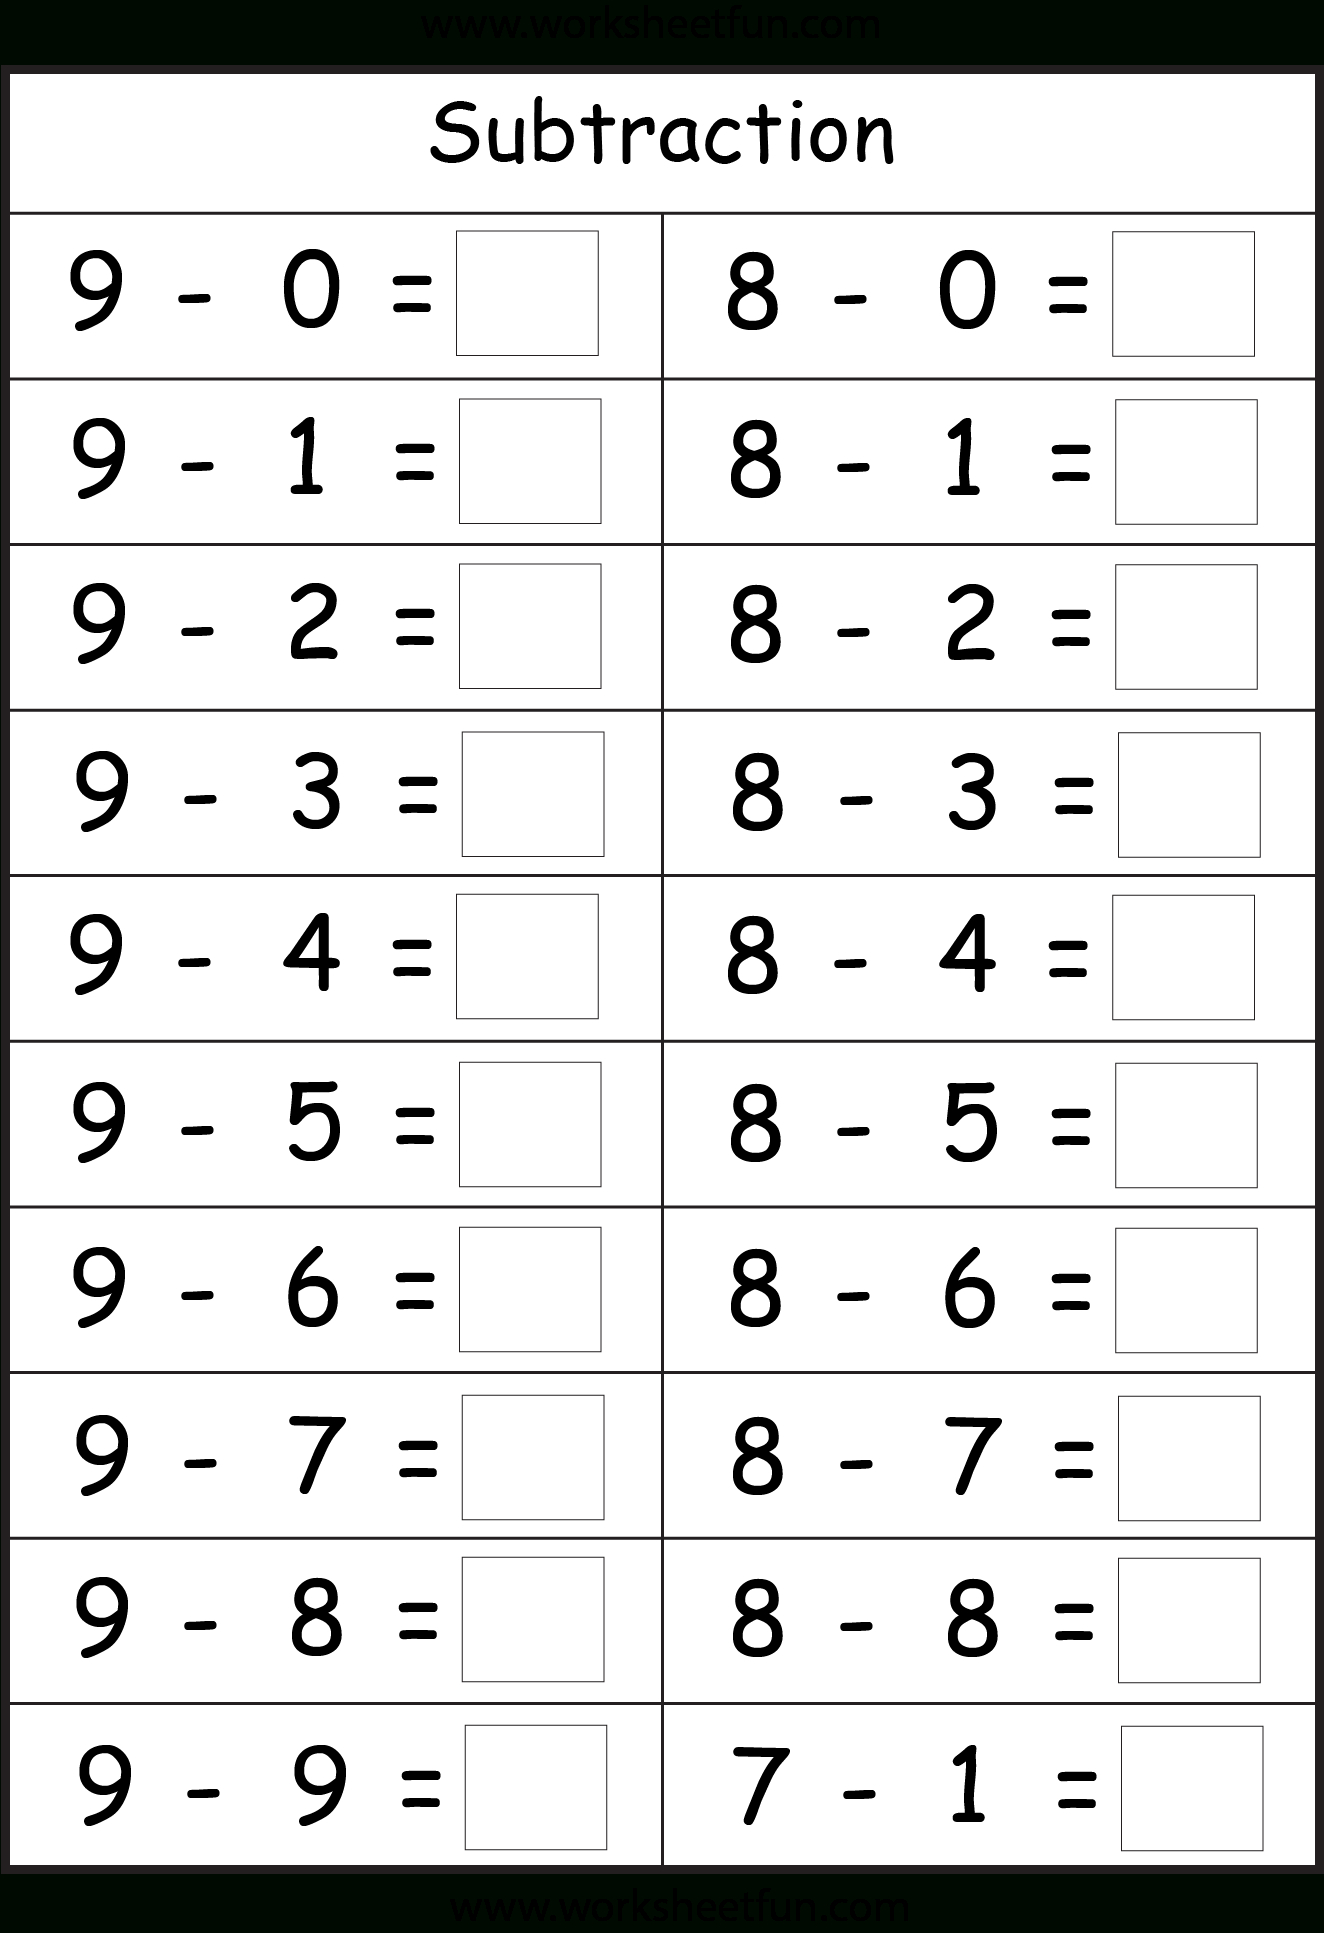 Subtraction - 4 Worksheets | Printable Worksheets | Worksheets - Free Printable Kindergarten Addition And Subtraction Worksheets